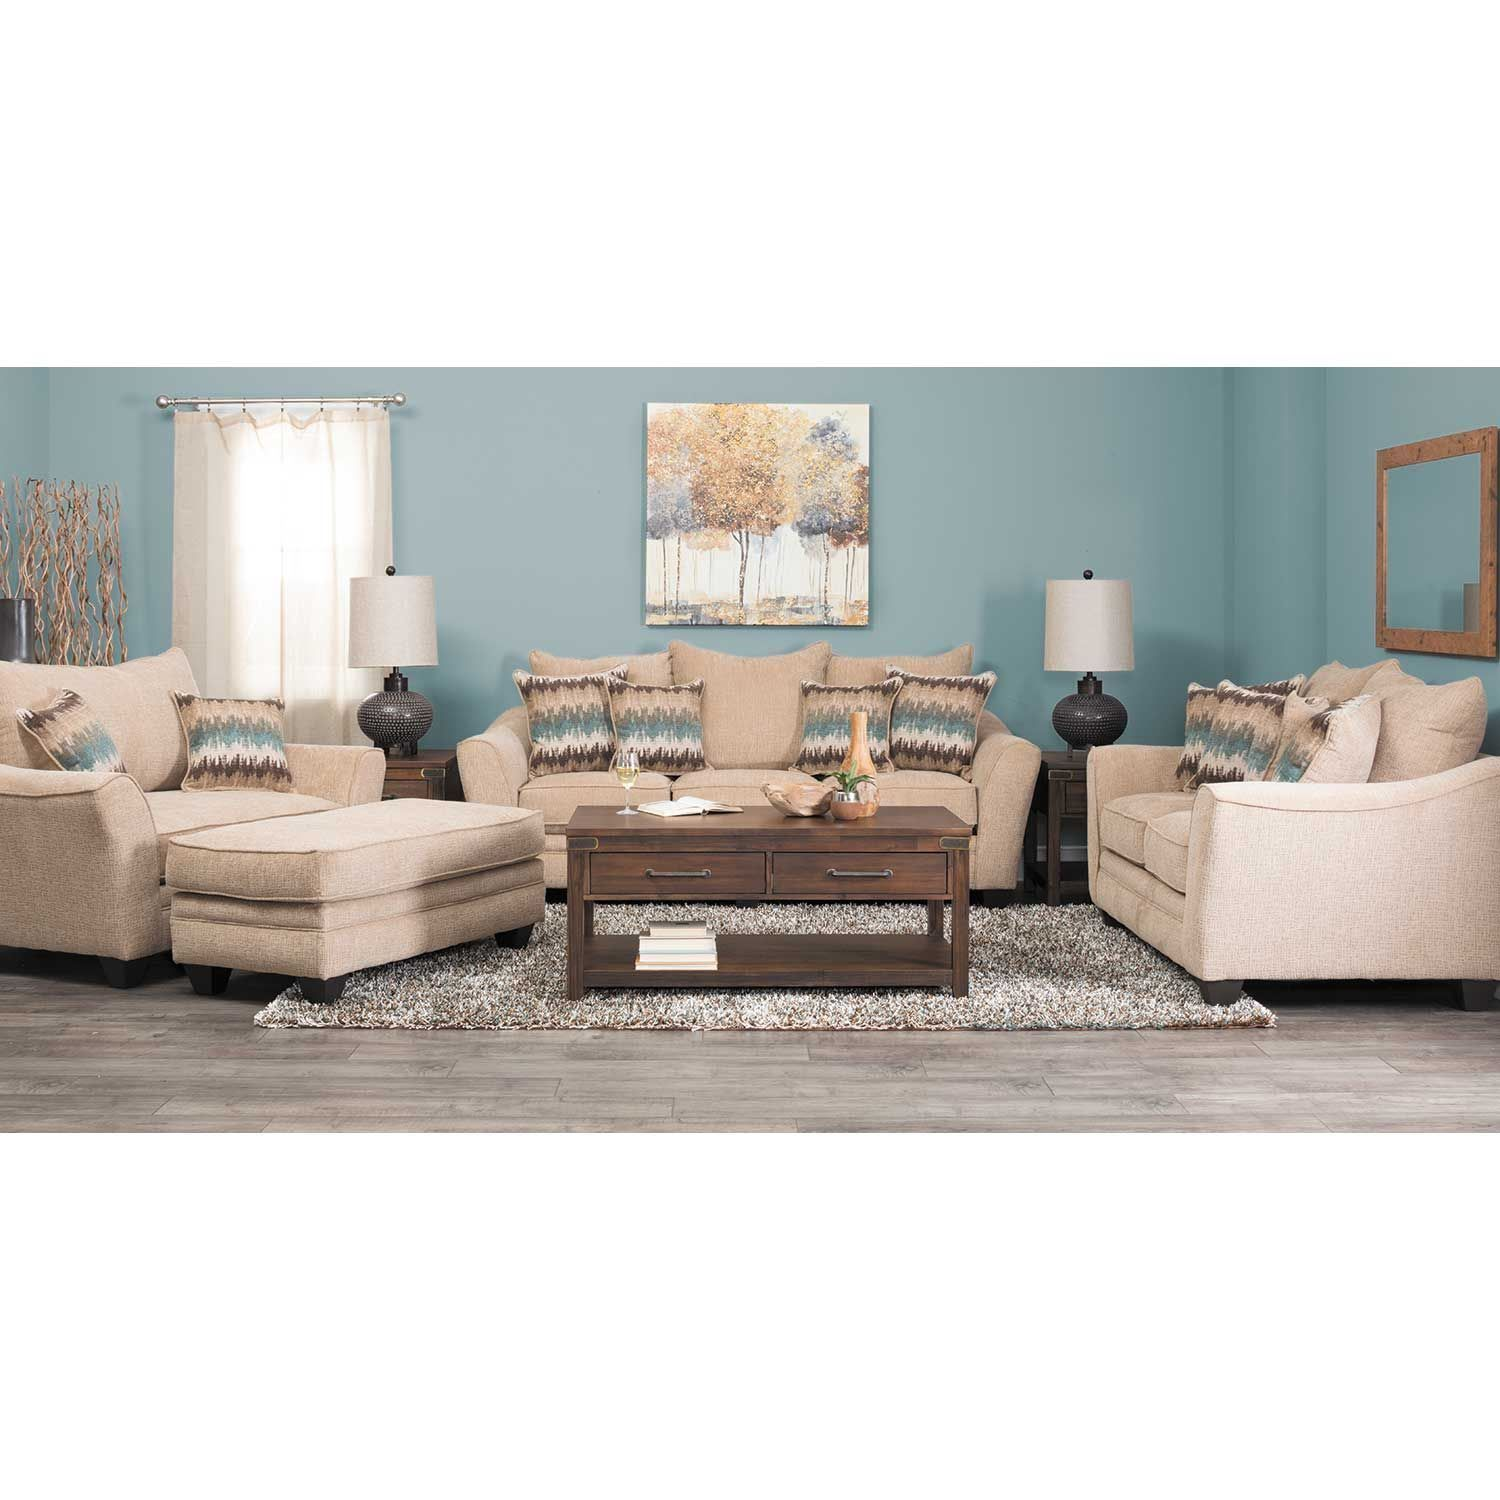 Sectional Sofa Oatmeal Sofa by American Furniture Manufacturing is now available at American Furniture Warehouse